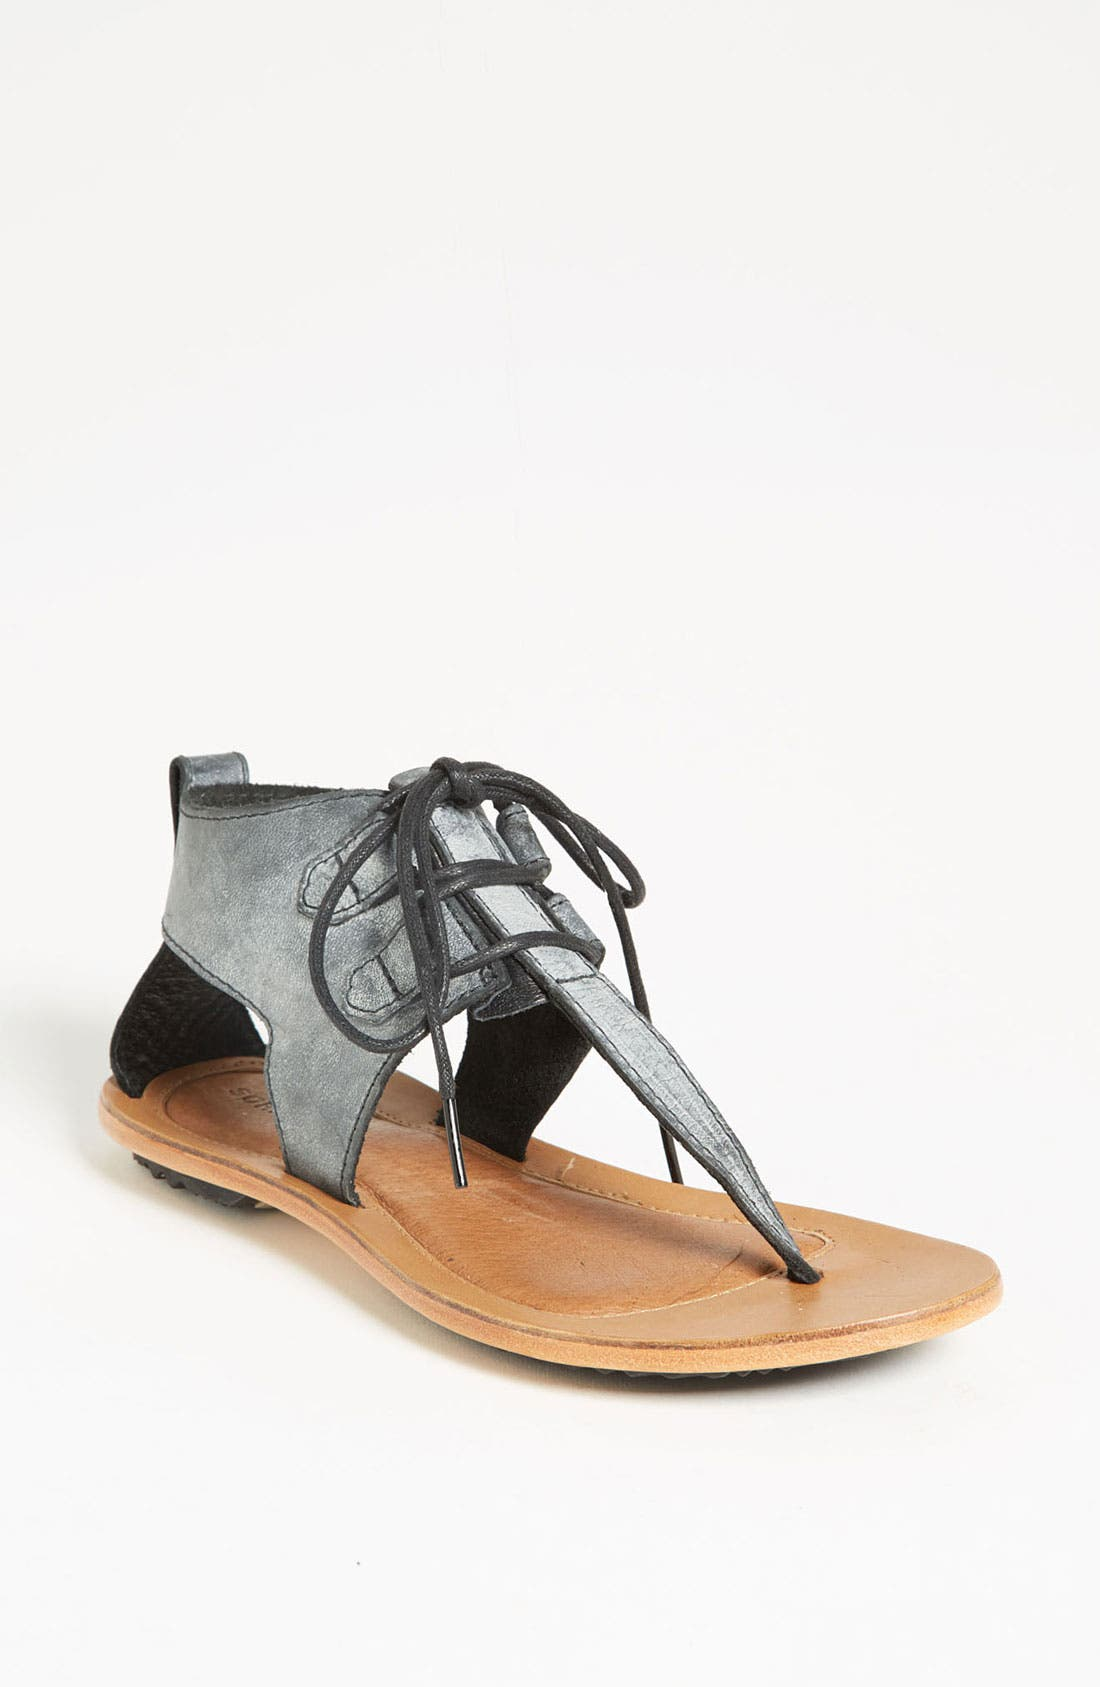 Alternate Image 1 Selected - Sorel 'Summer' Sandal